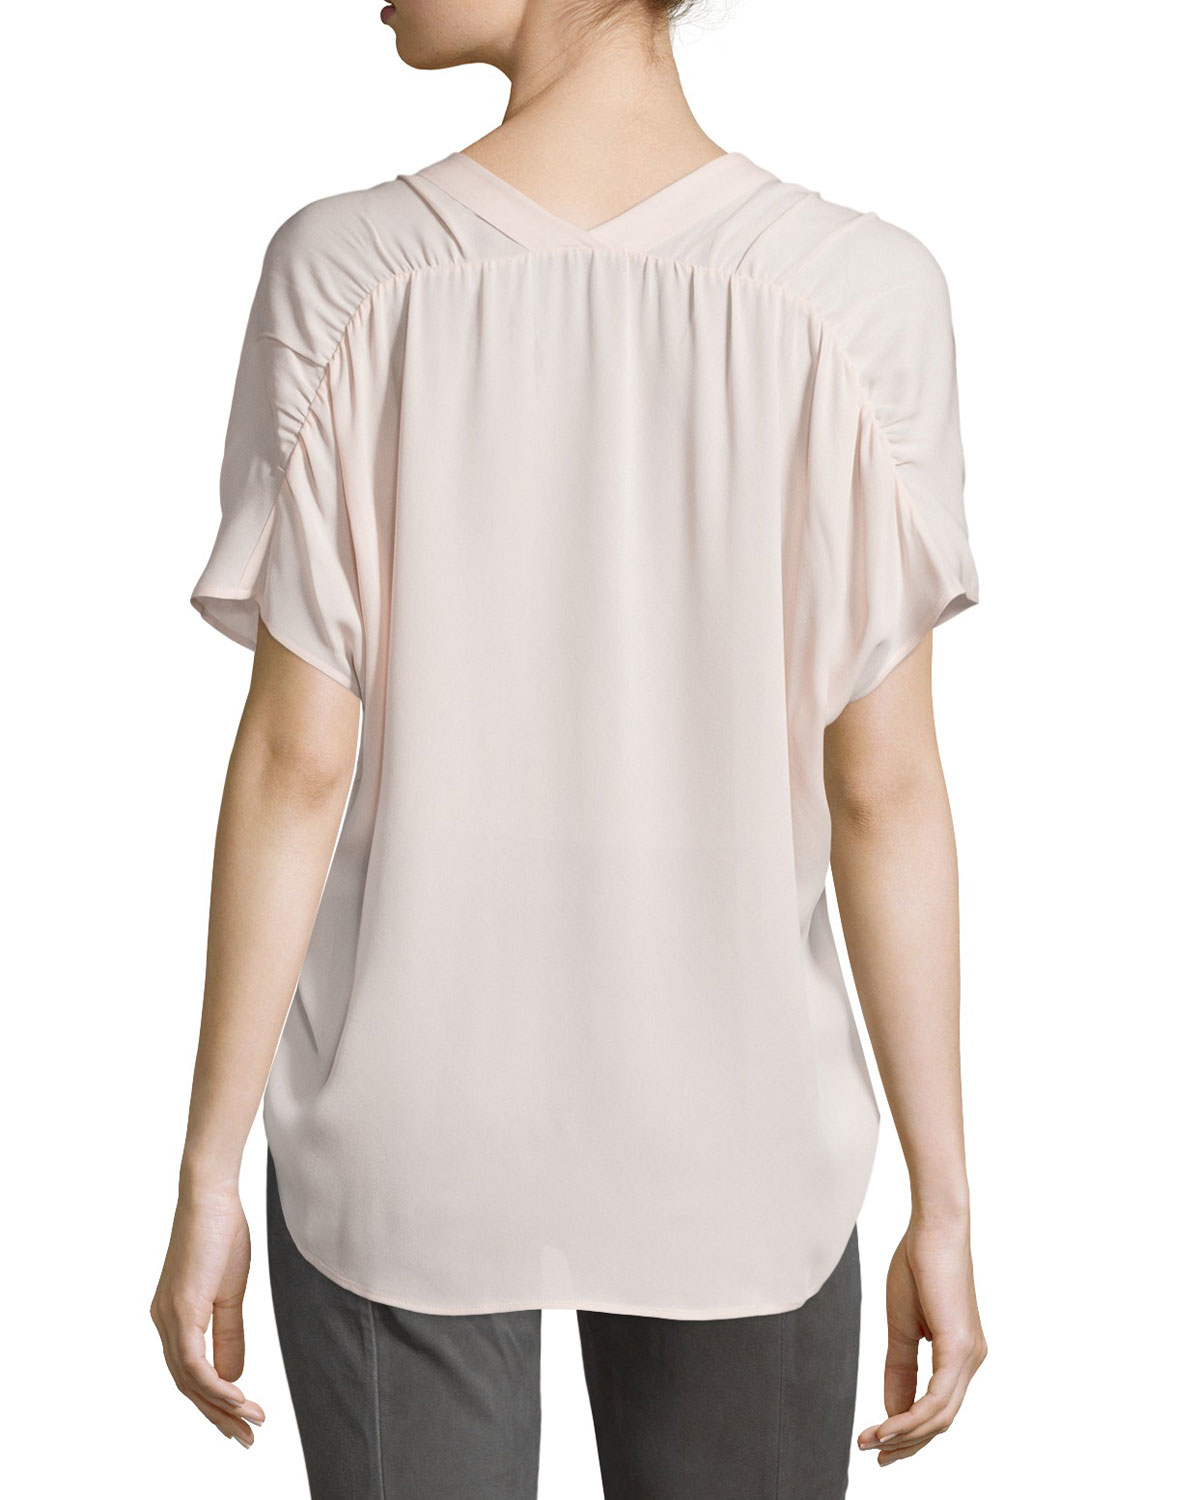 Buy Cheap Get Authentic pleated front blouse - Grey Vince Explore Sale Online Find Great dbmW2JzMHS